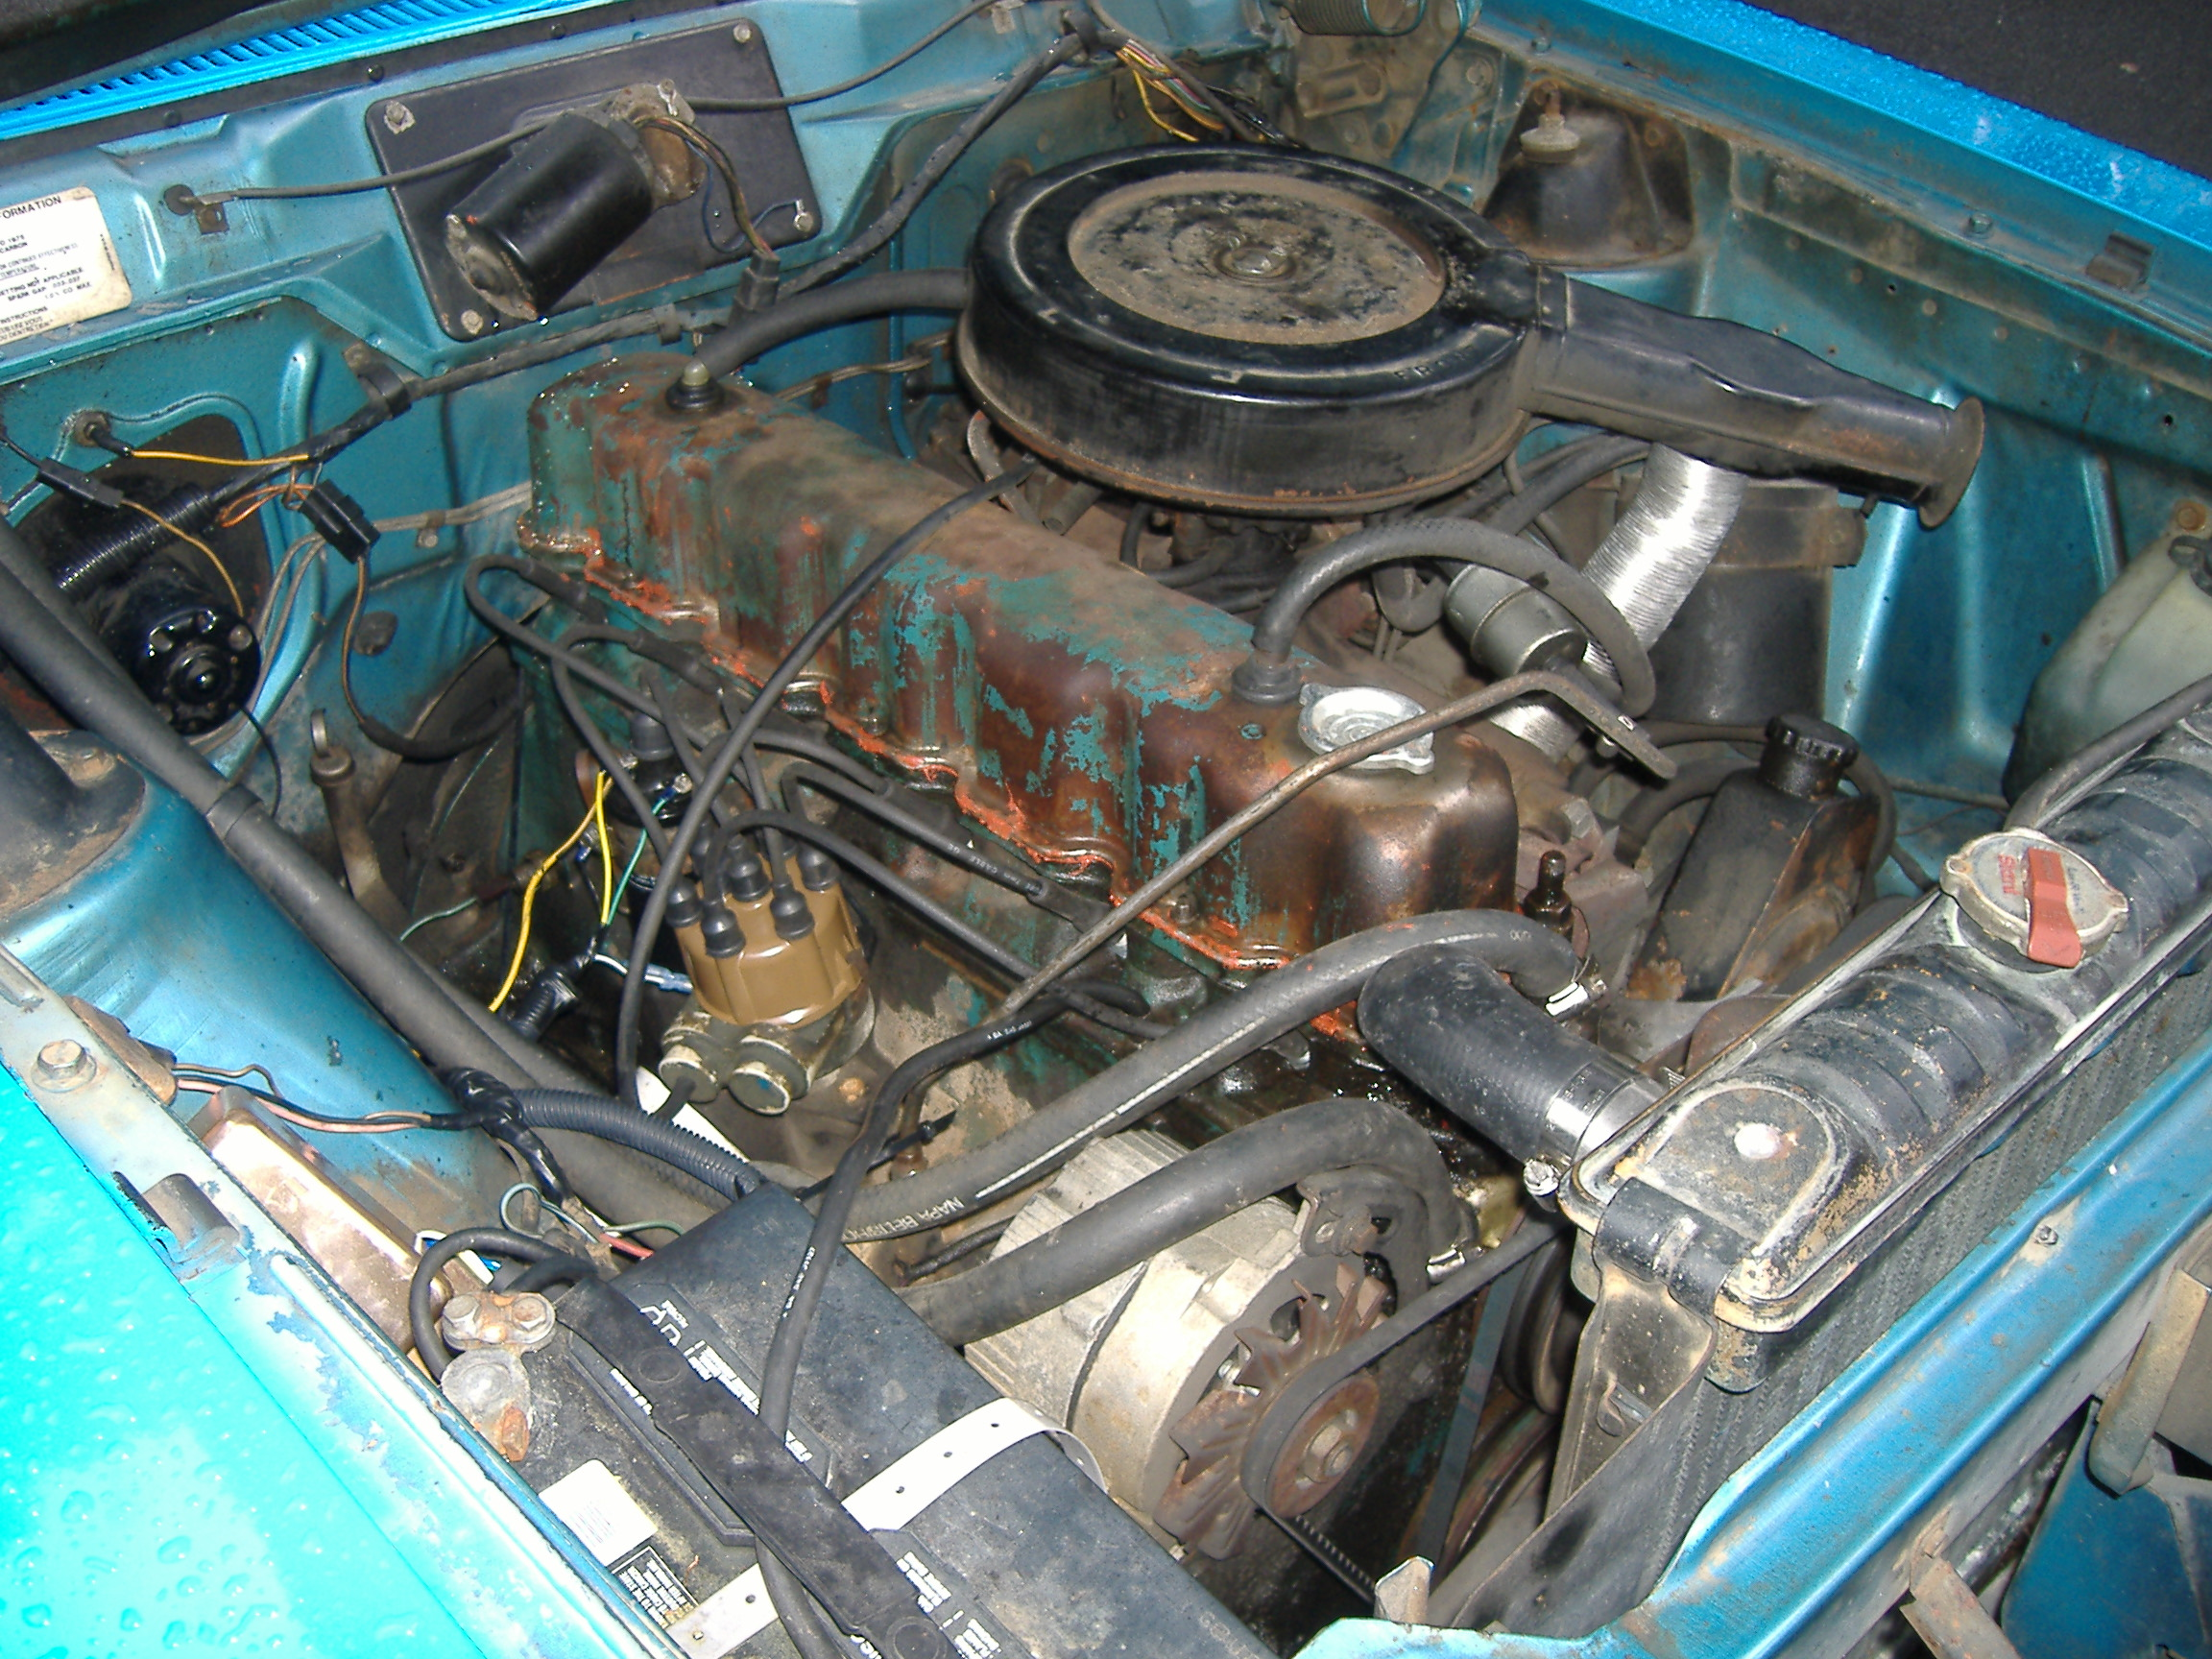 file 1975 amc hornet 232 i6 engine jpg wikimedia commons rh commons wikimedia org HVAC Wiring Diagrams Automotive Wiring Diagrams